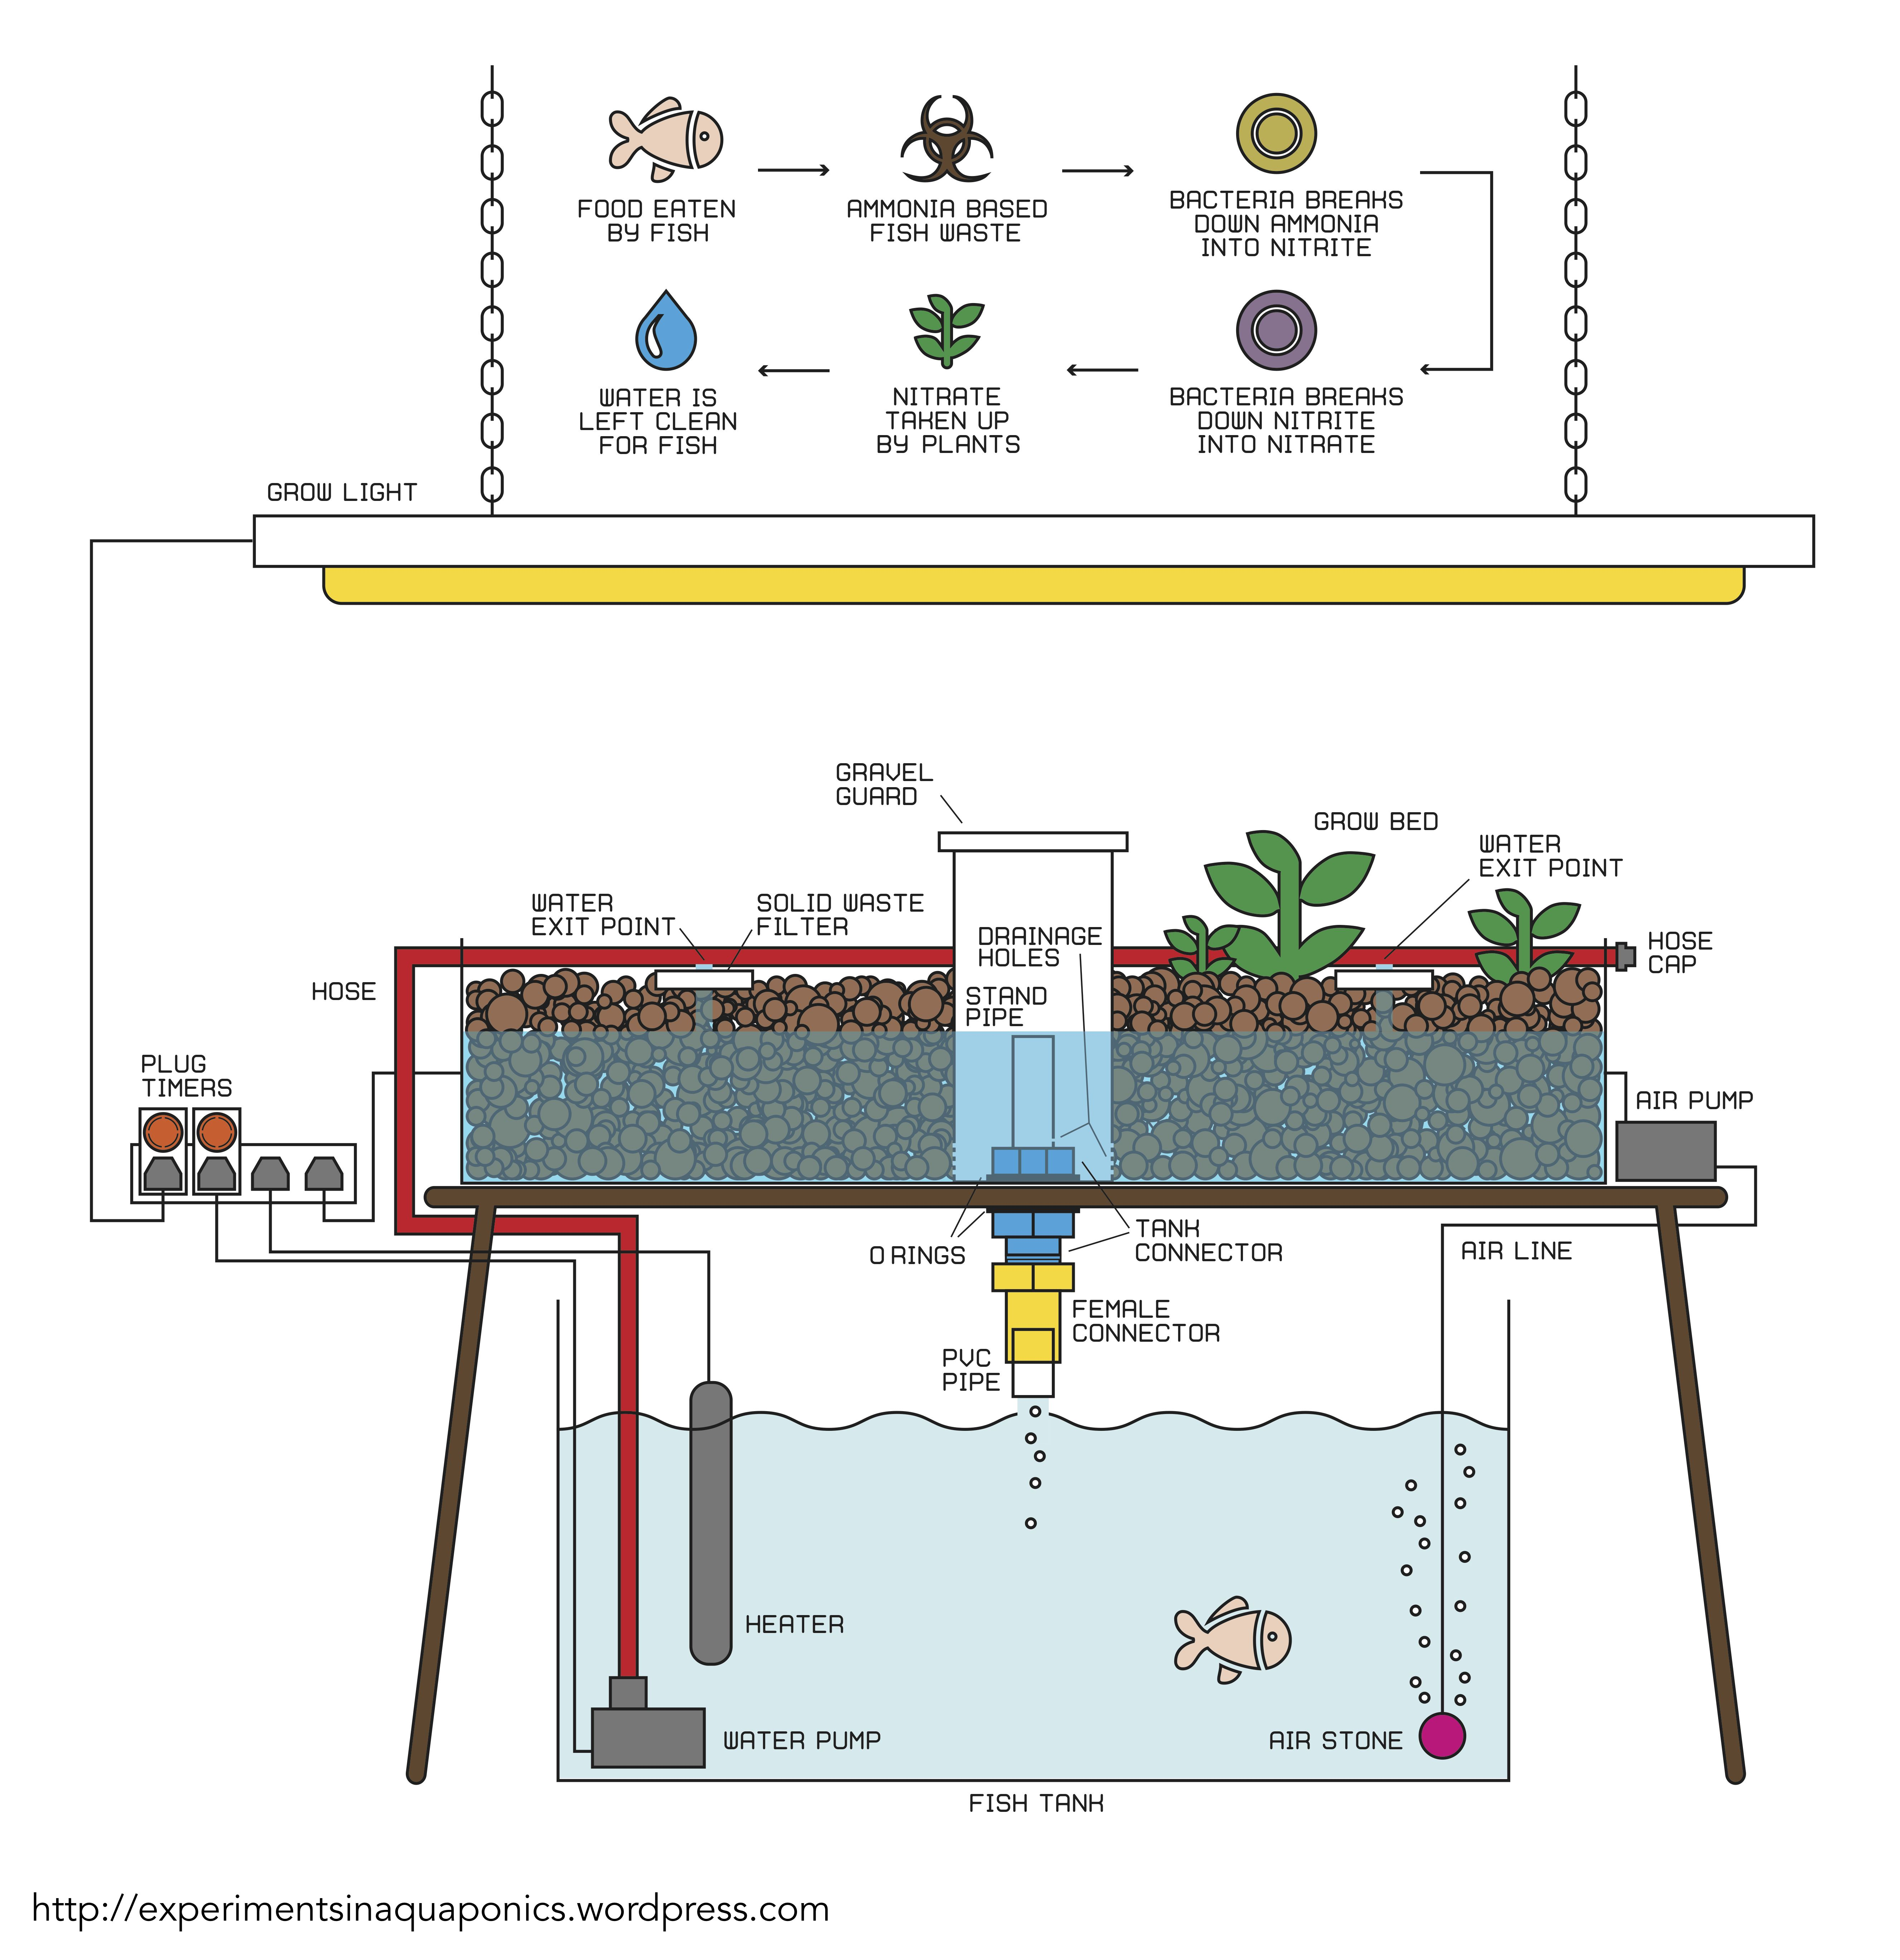 a basic guide to building your own aquaponics system click to enlarge image aquaponics is a technique enabling the sustainable production of edible fish  [ 5309 x 5478 Pixel ]